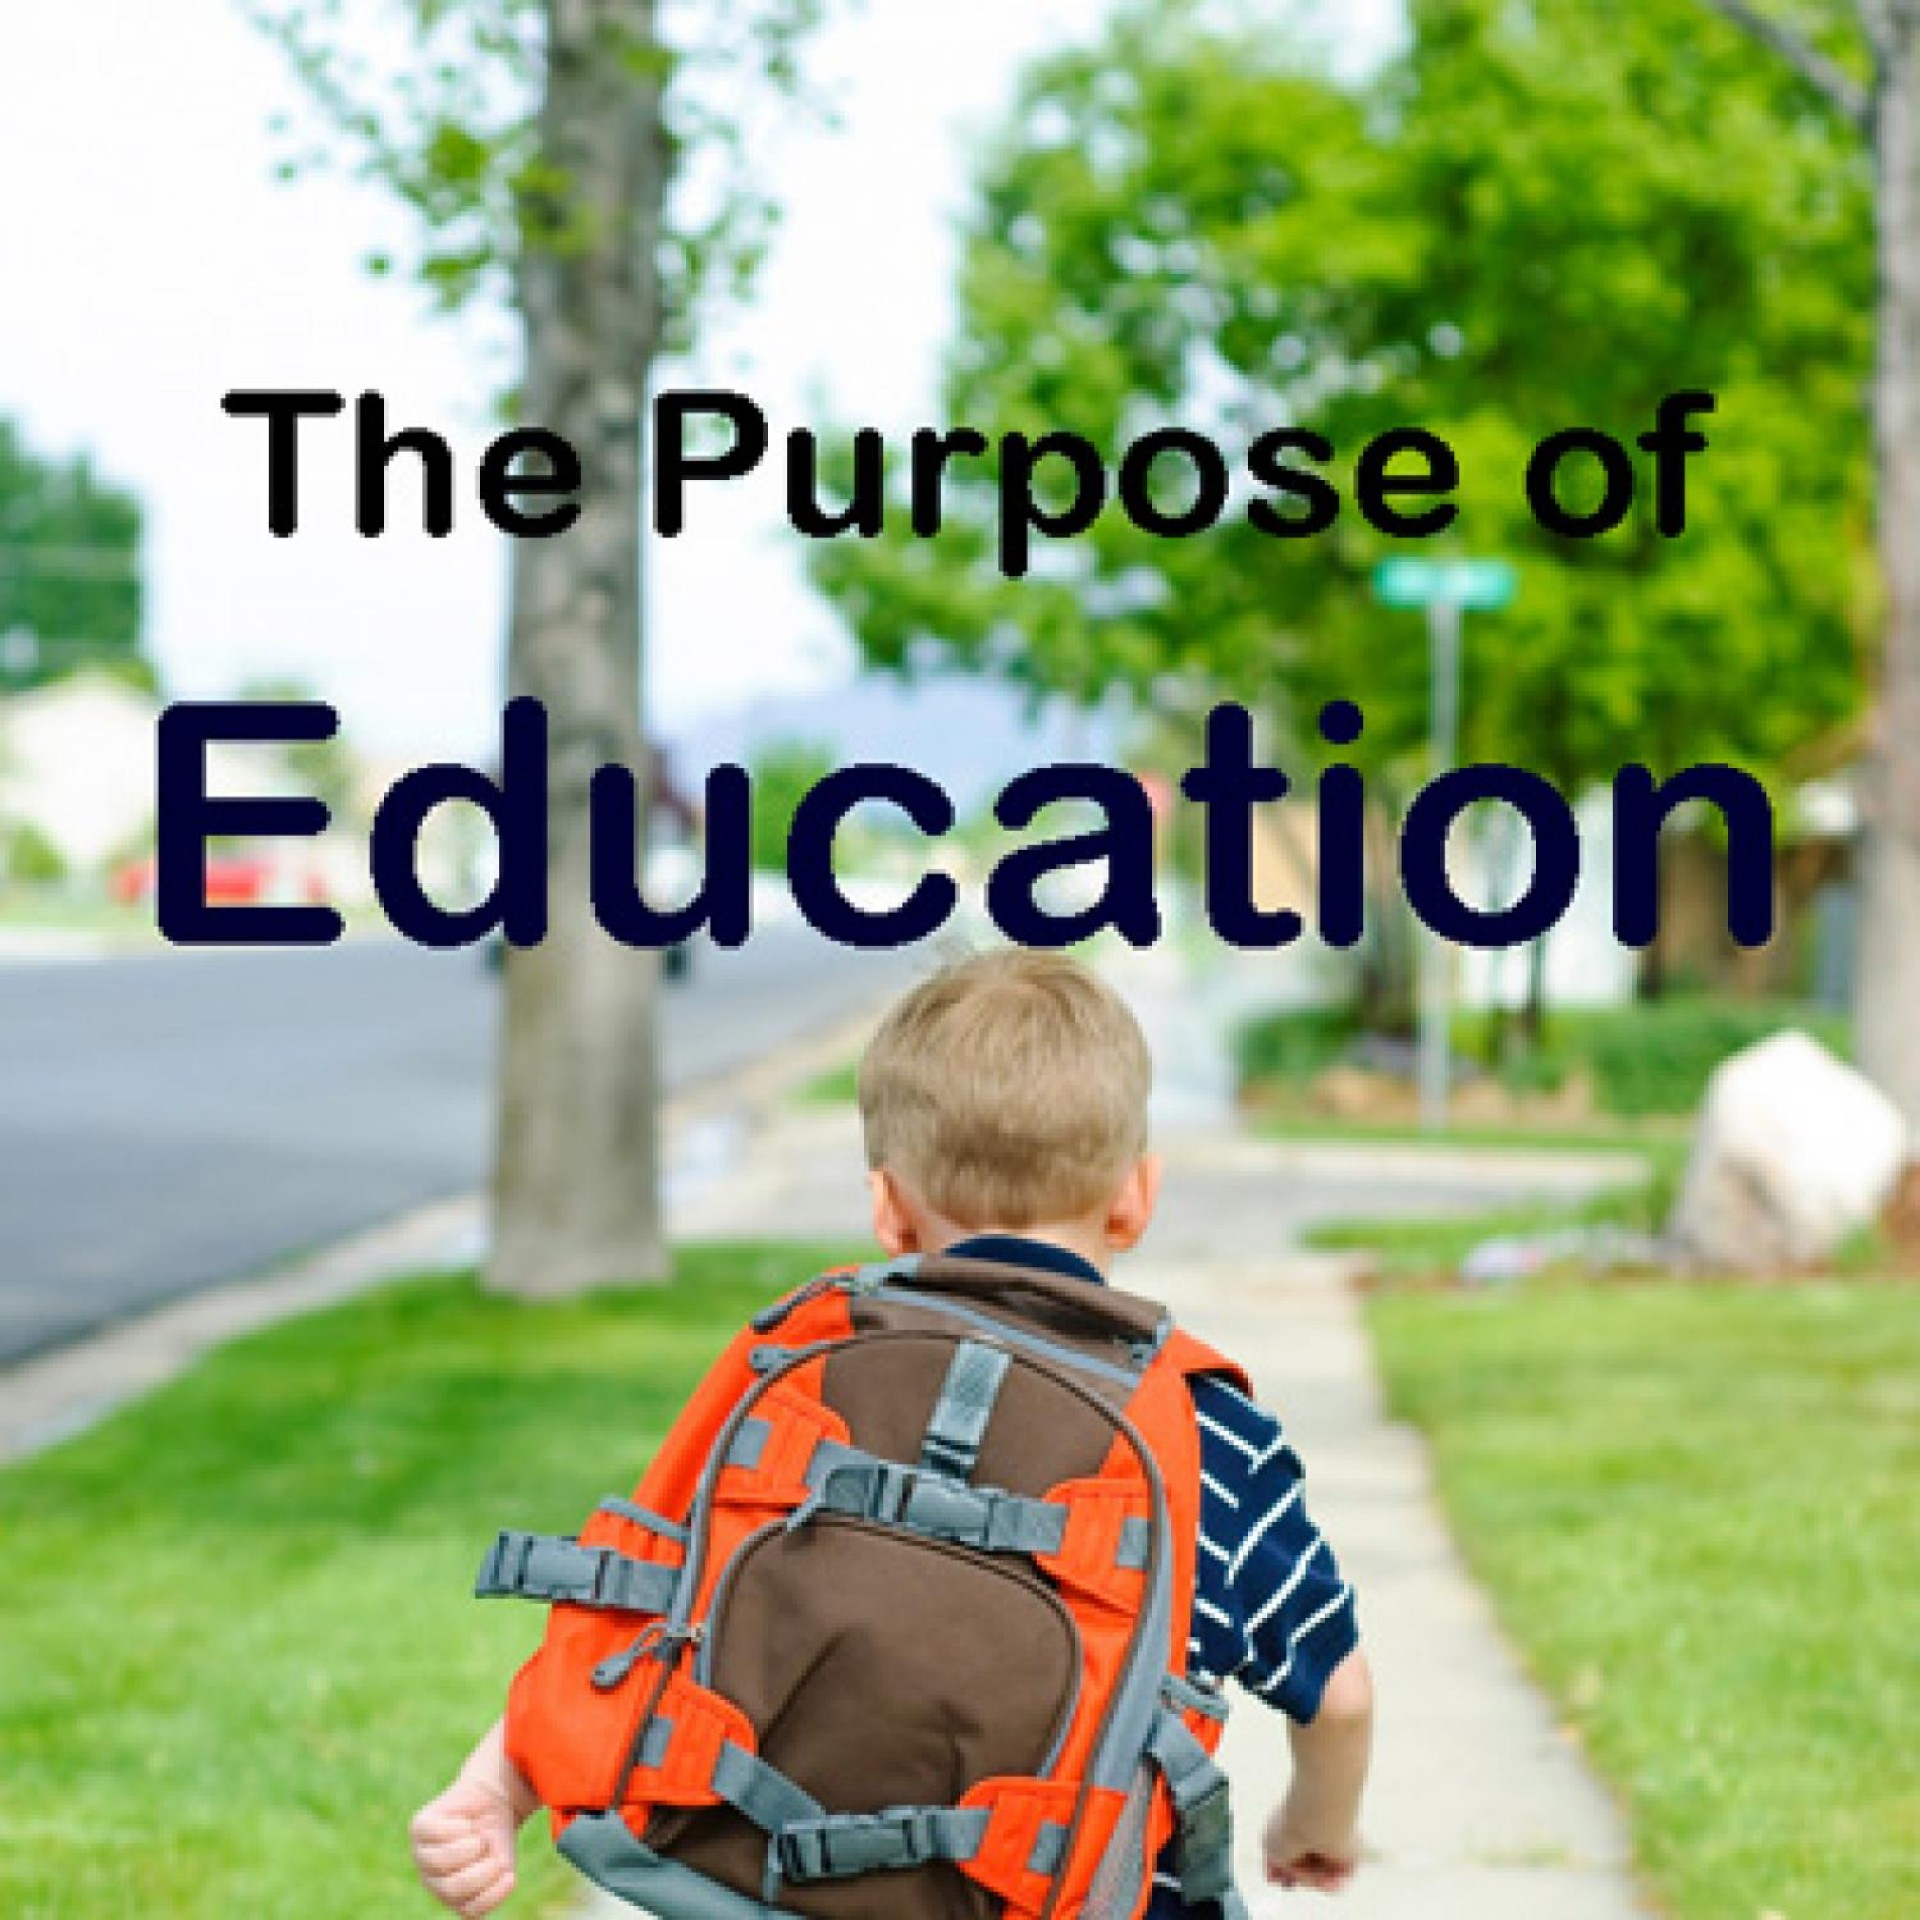 004 Purpose Of Education Essay Example Fearsome Pdf University 1920